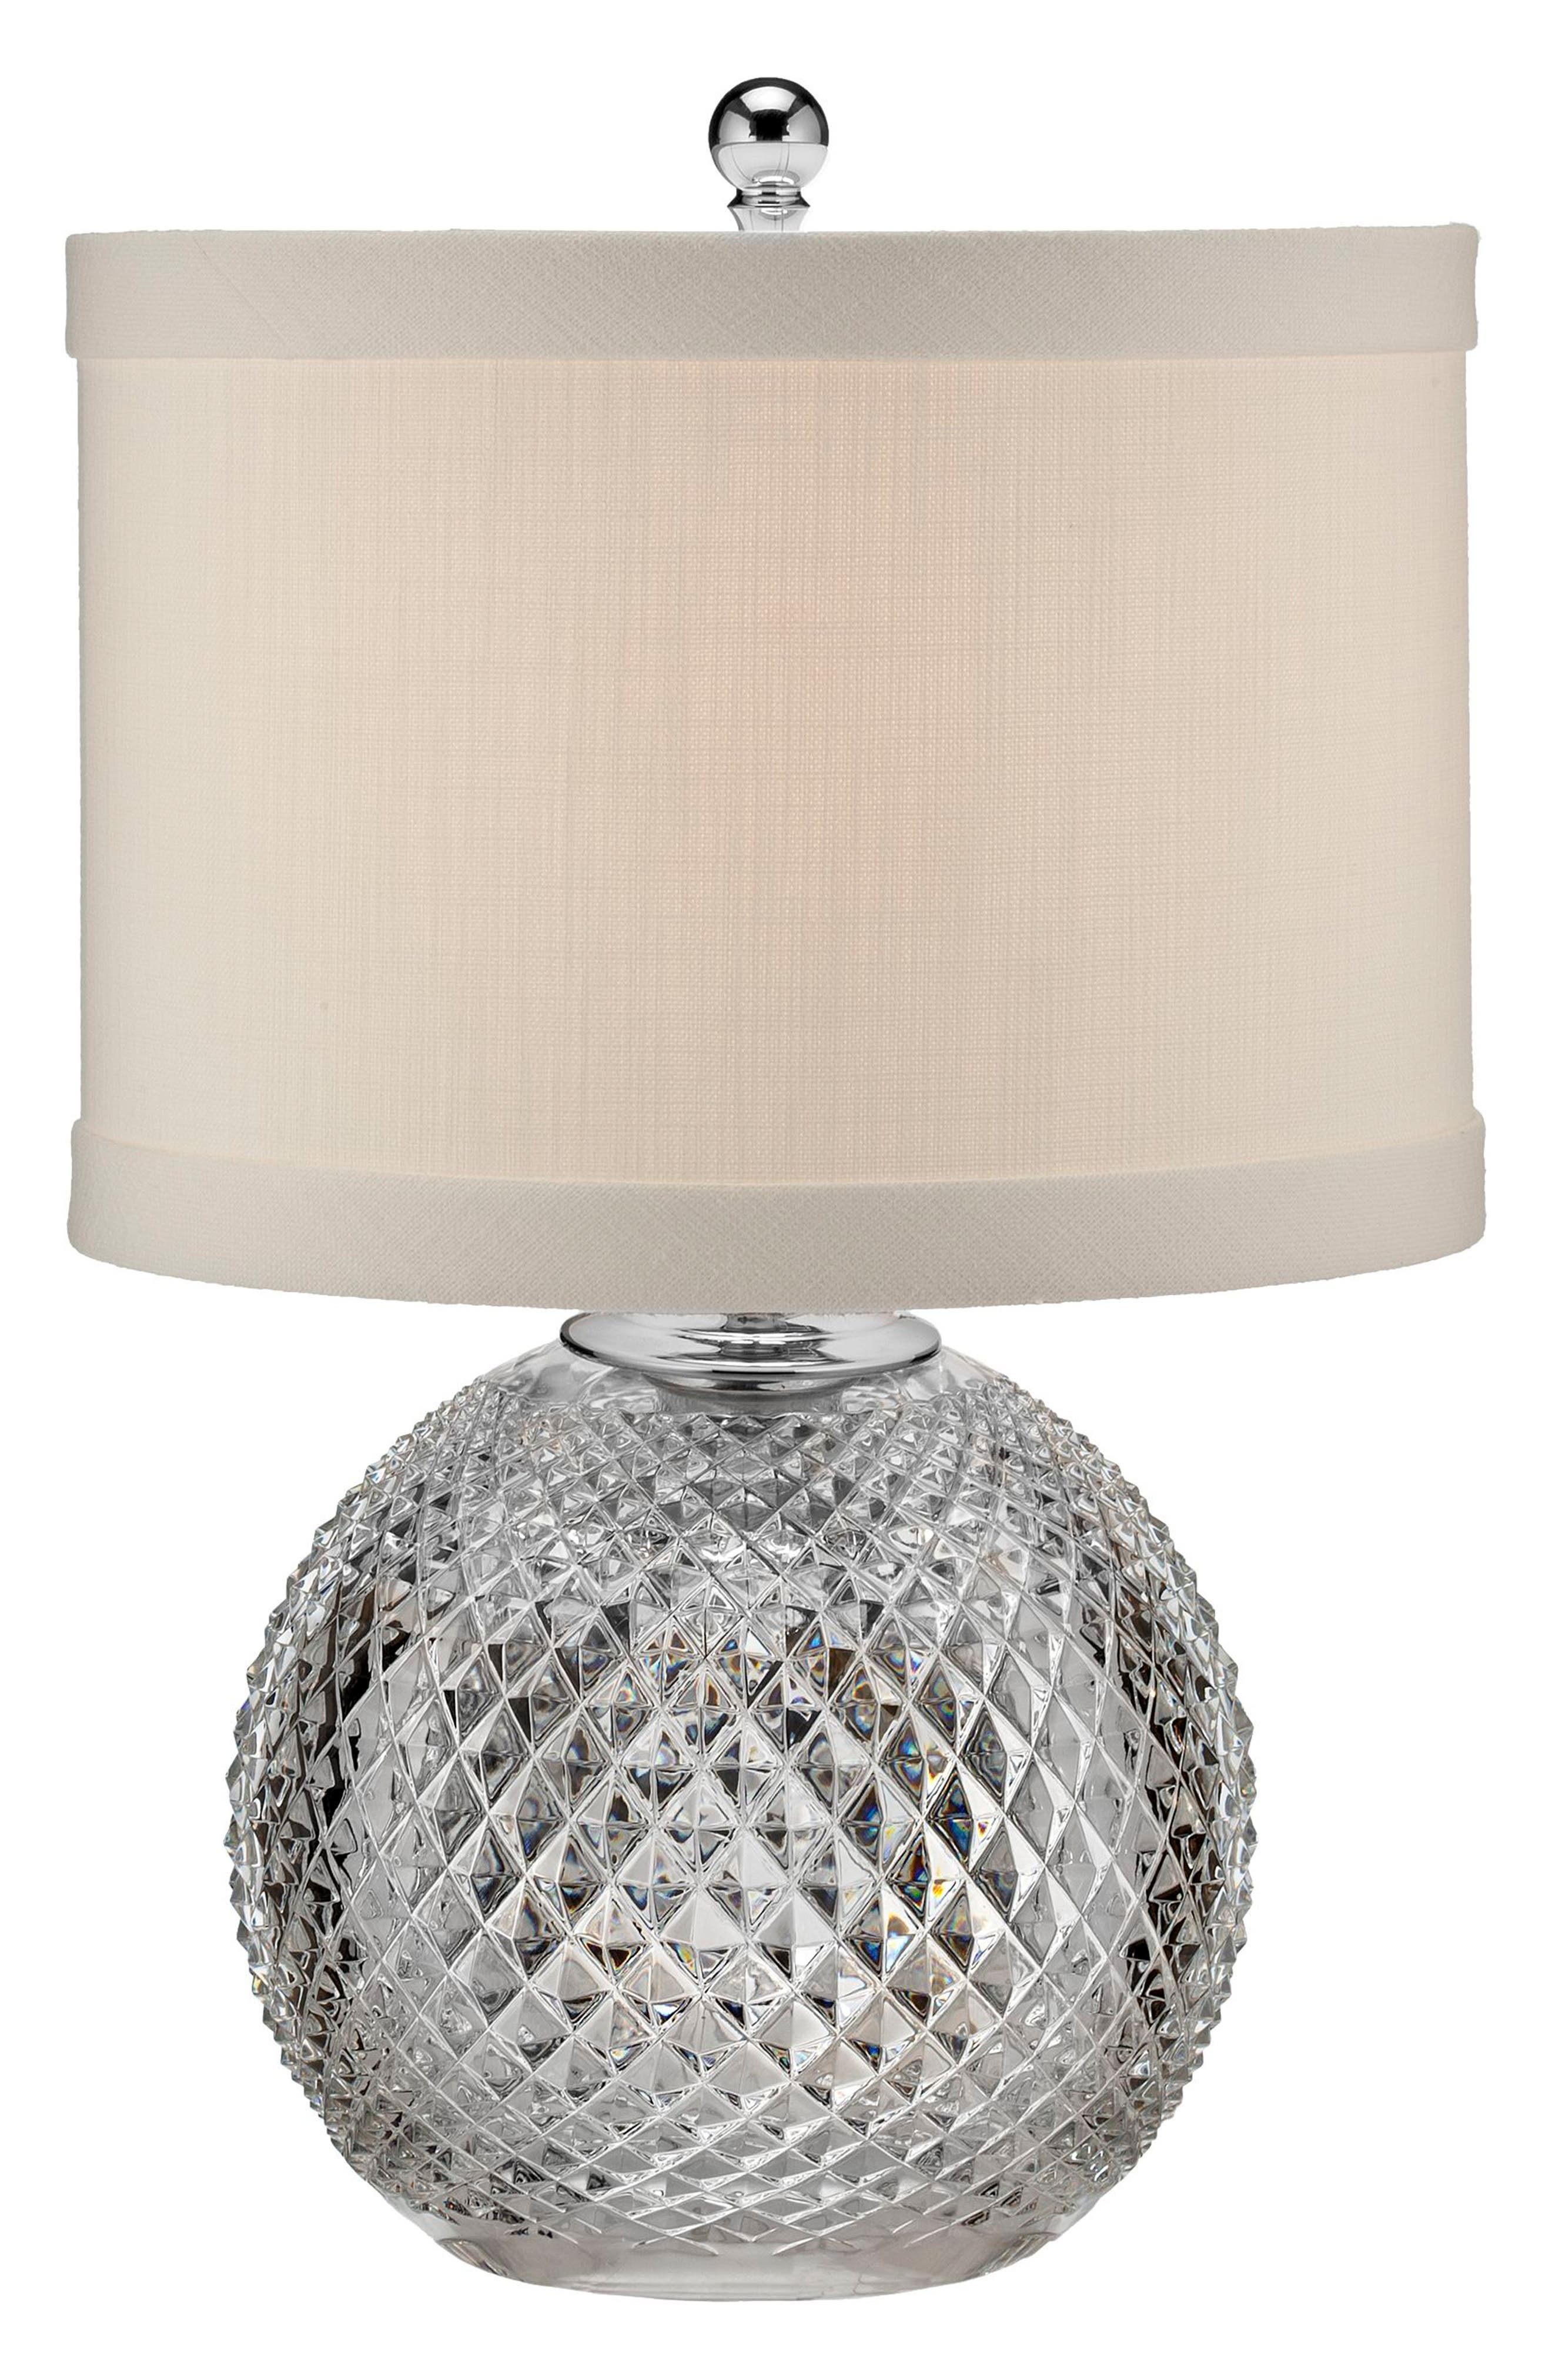 Alana Crystal & Chrome Table Lamp,                             Main thumbnail 1, color,                             100